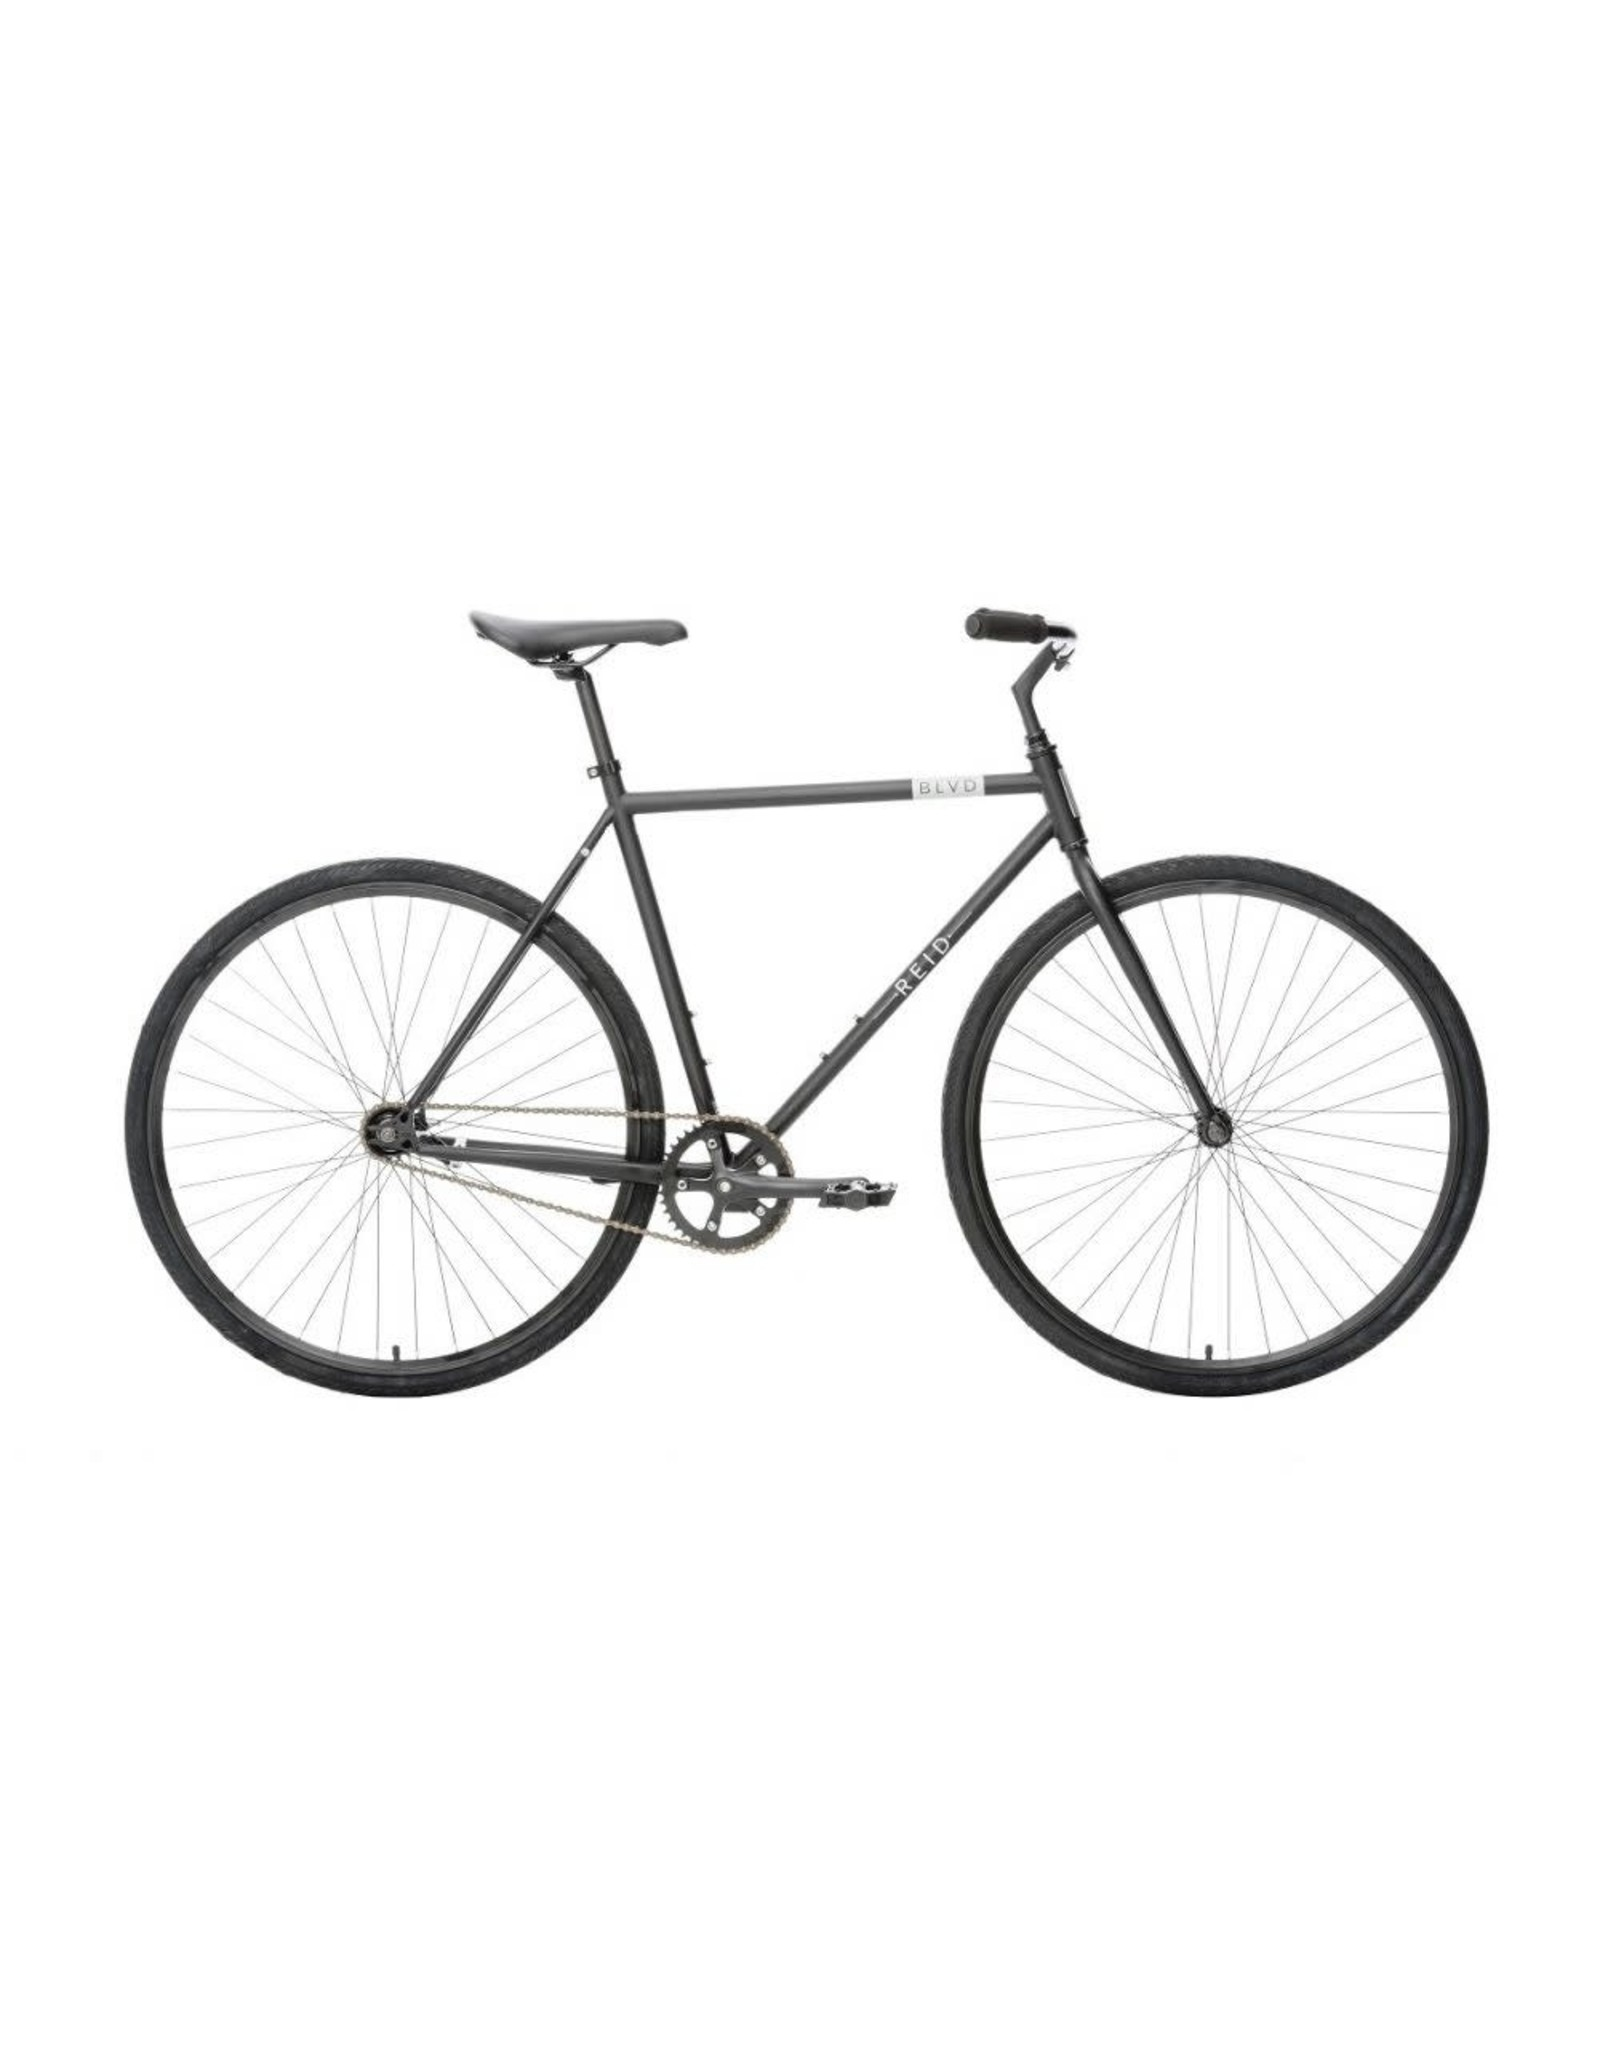 Reid BLVD Single Speed Bike